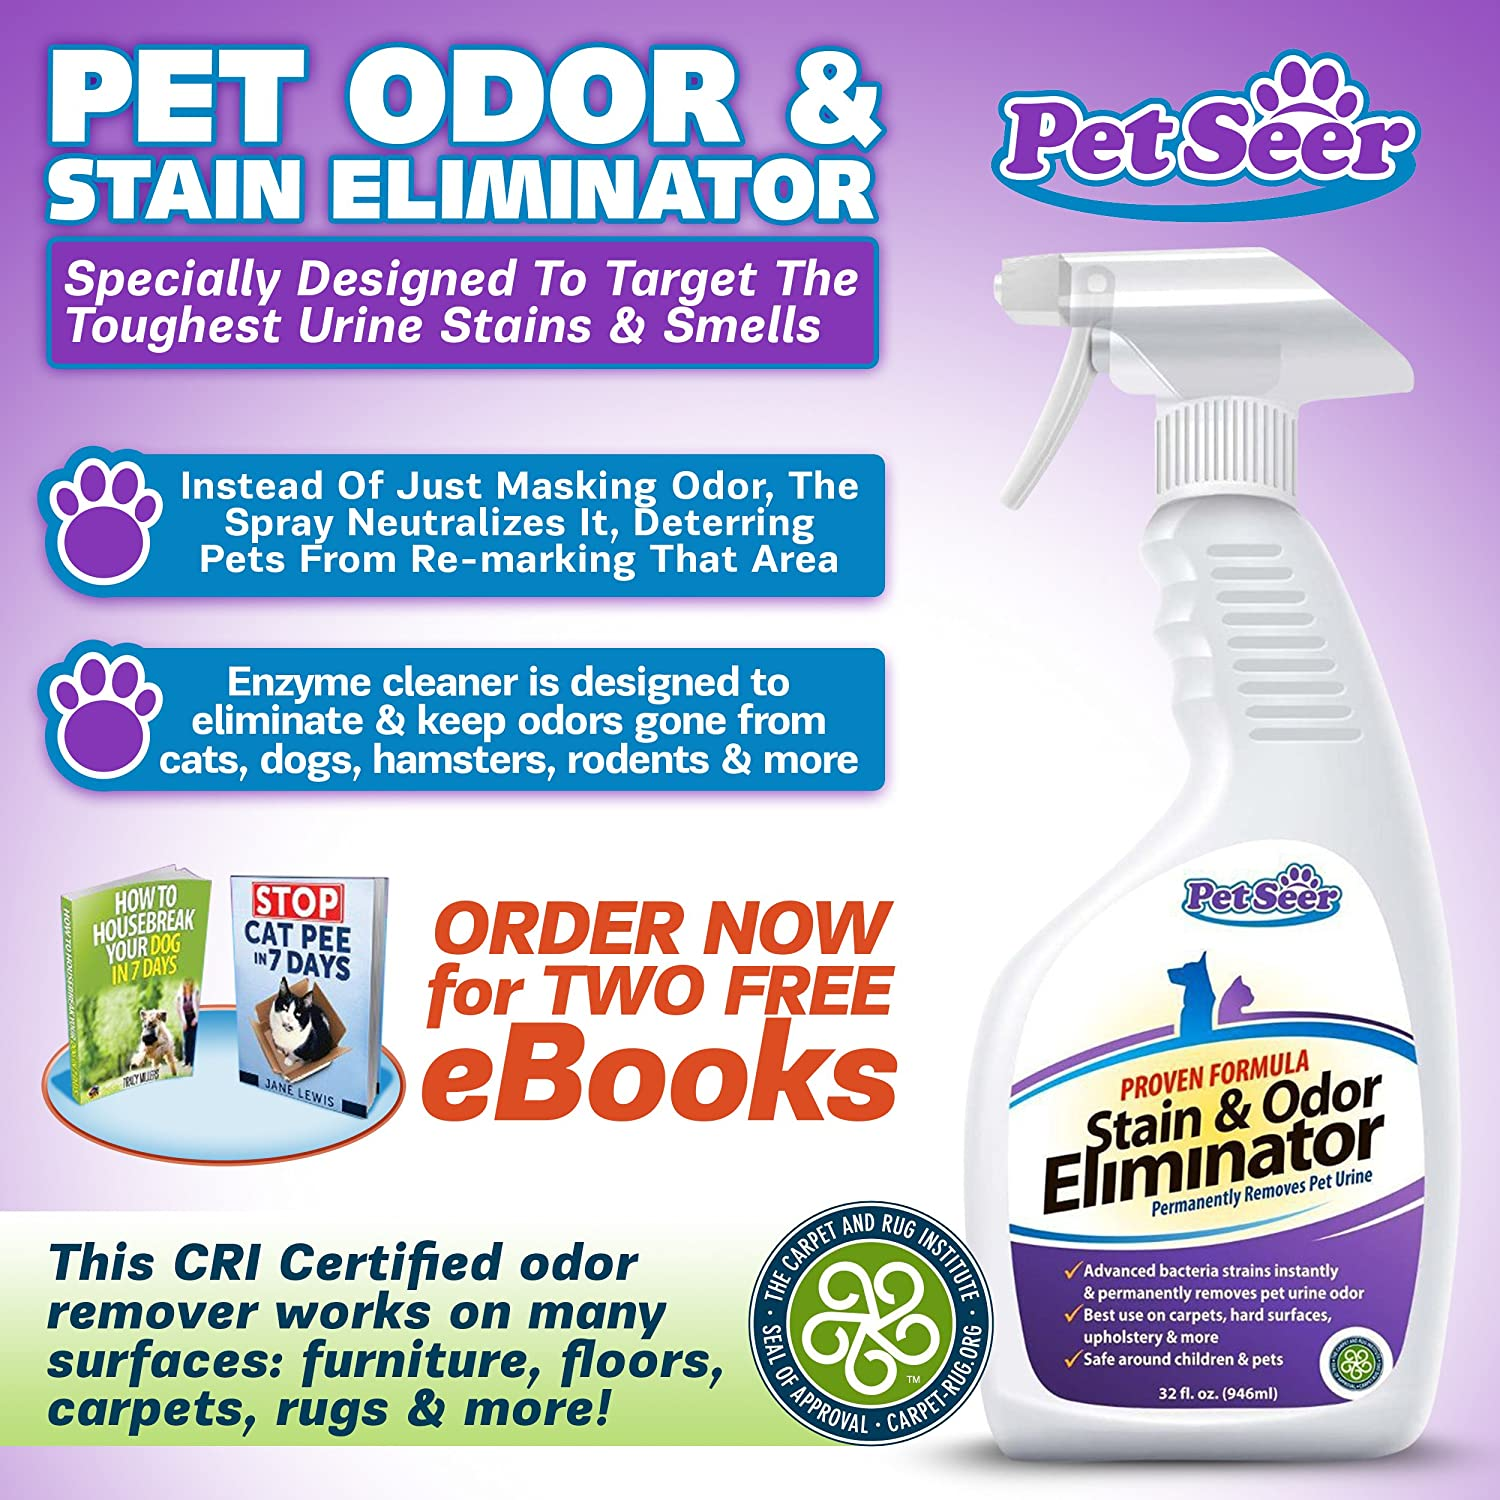 ... Odor And Stain Remover/Eliminator   Neutralizes Strong Odors U0026 Cleans  Tough Stains   Designed To Deter Pets From Re Marking Area   Works On House  Cat, ...